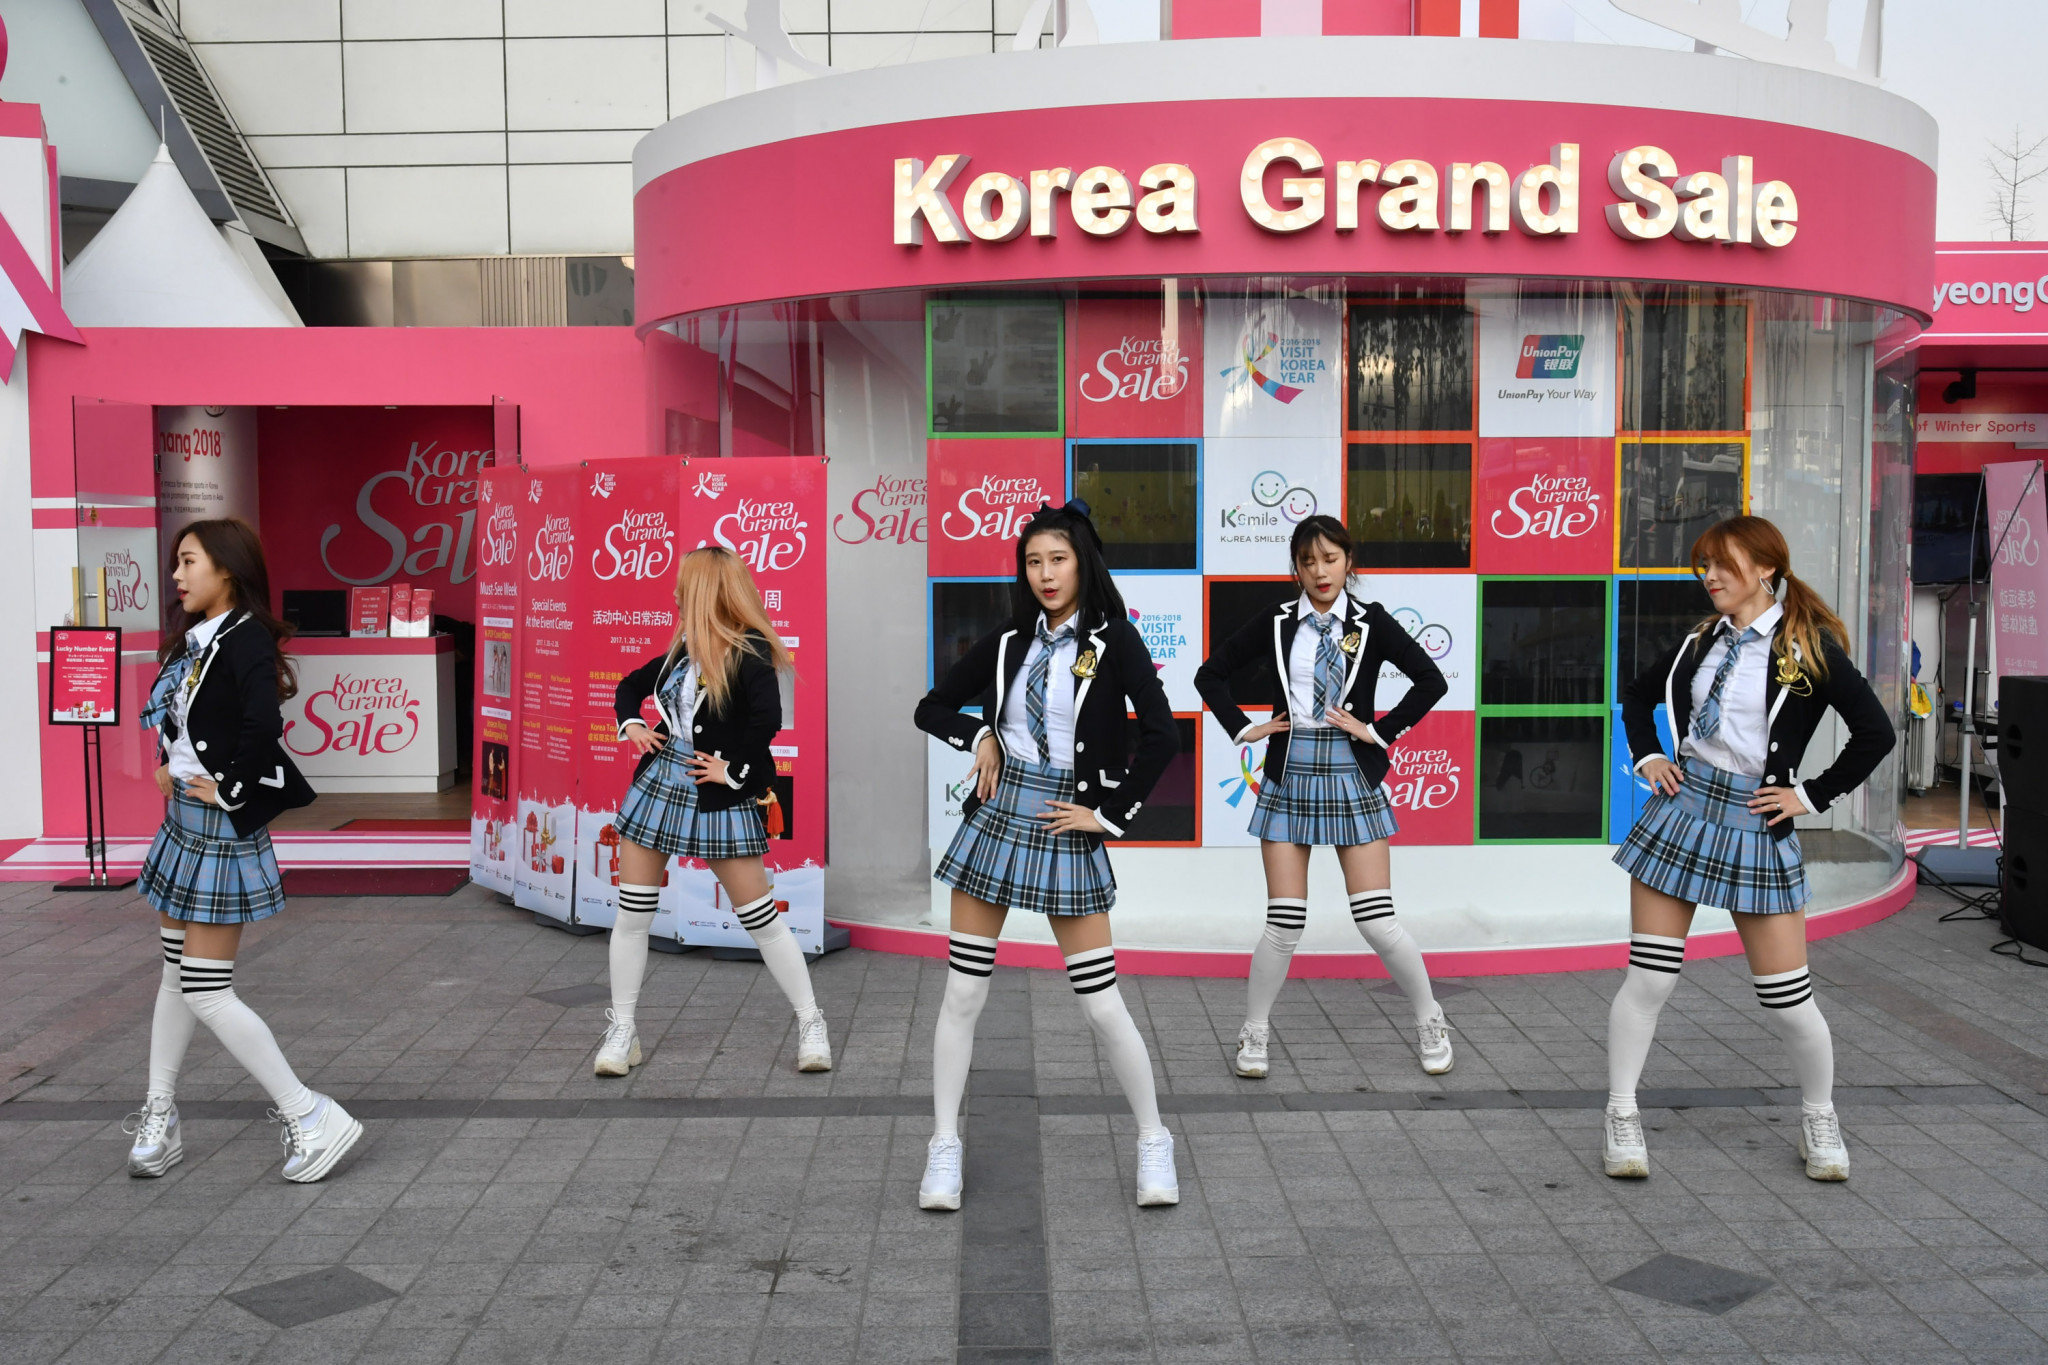 The Visit-Korea Committee will hold the 2018 Korea Grand Sale,a shopping, culture and tourism festival for foreigners from January 18 to February 28.